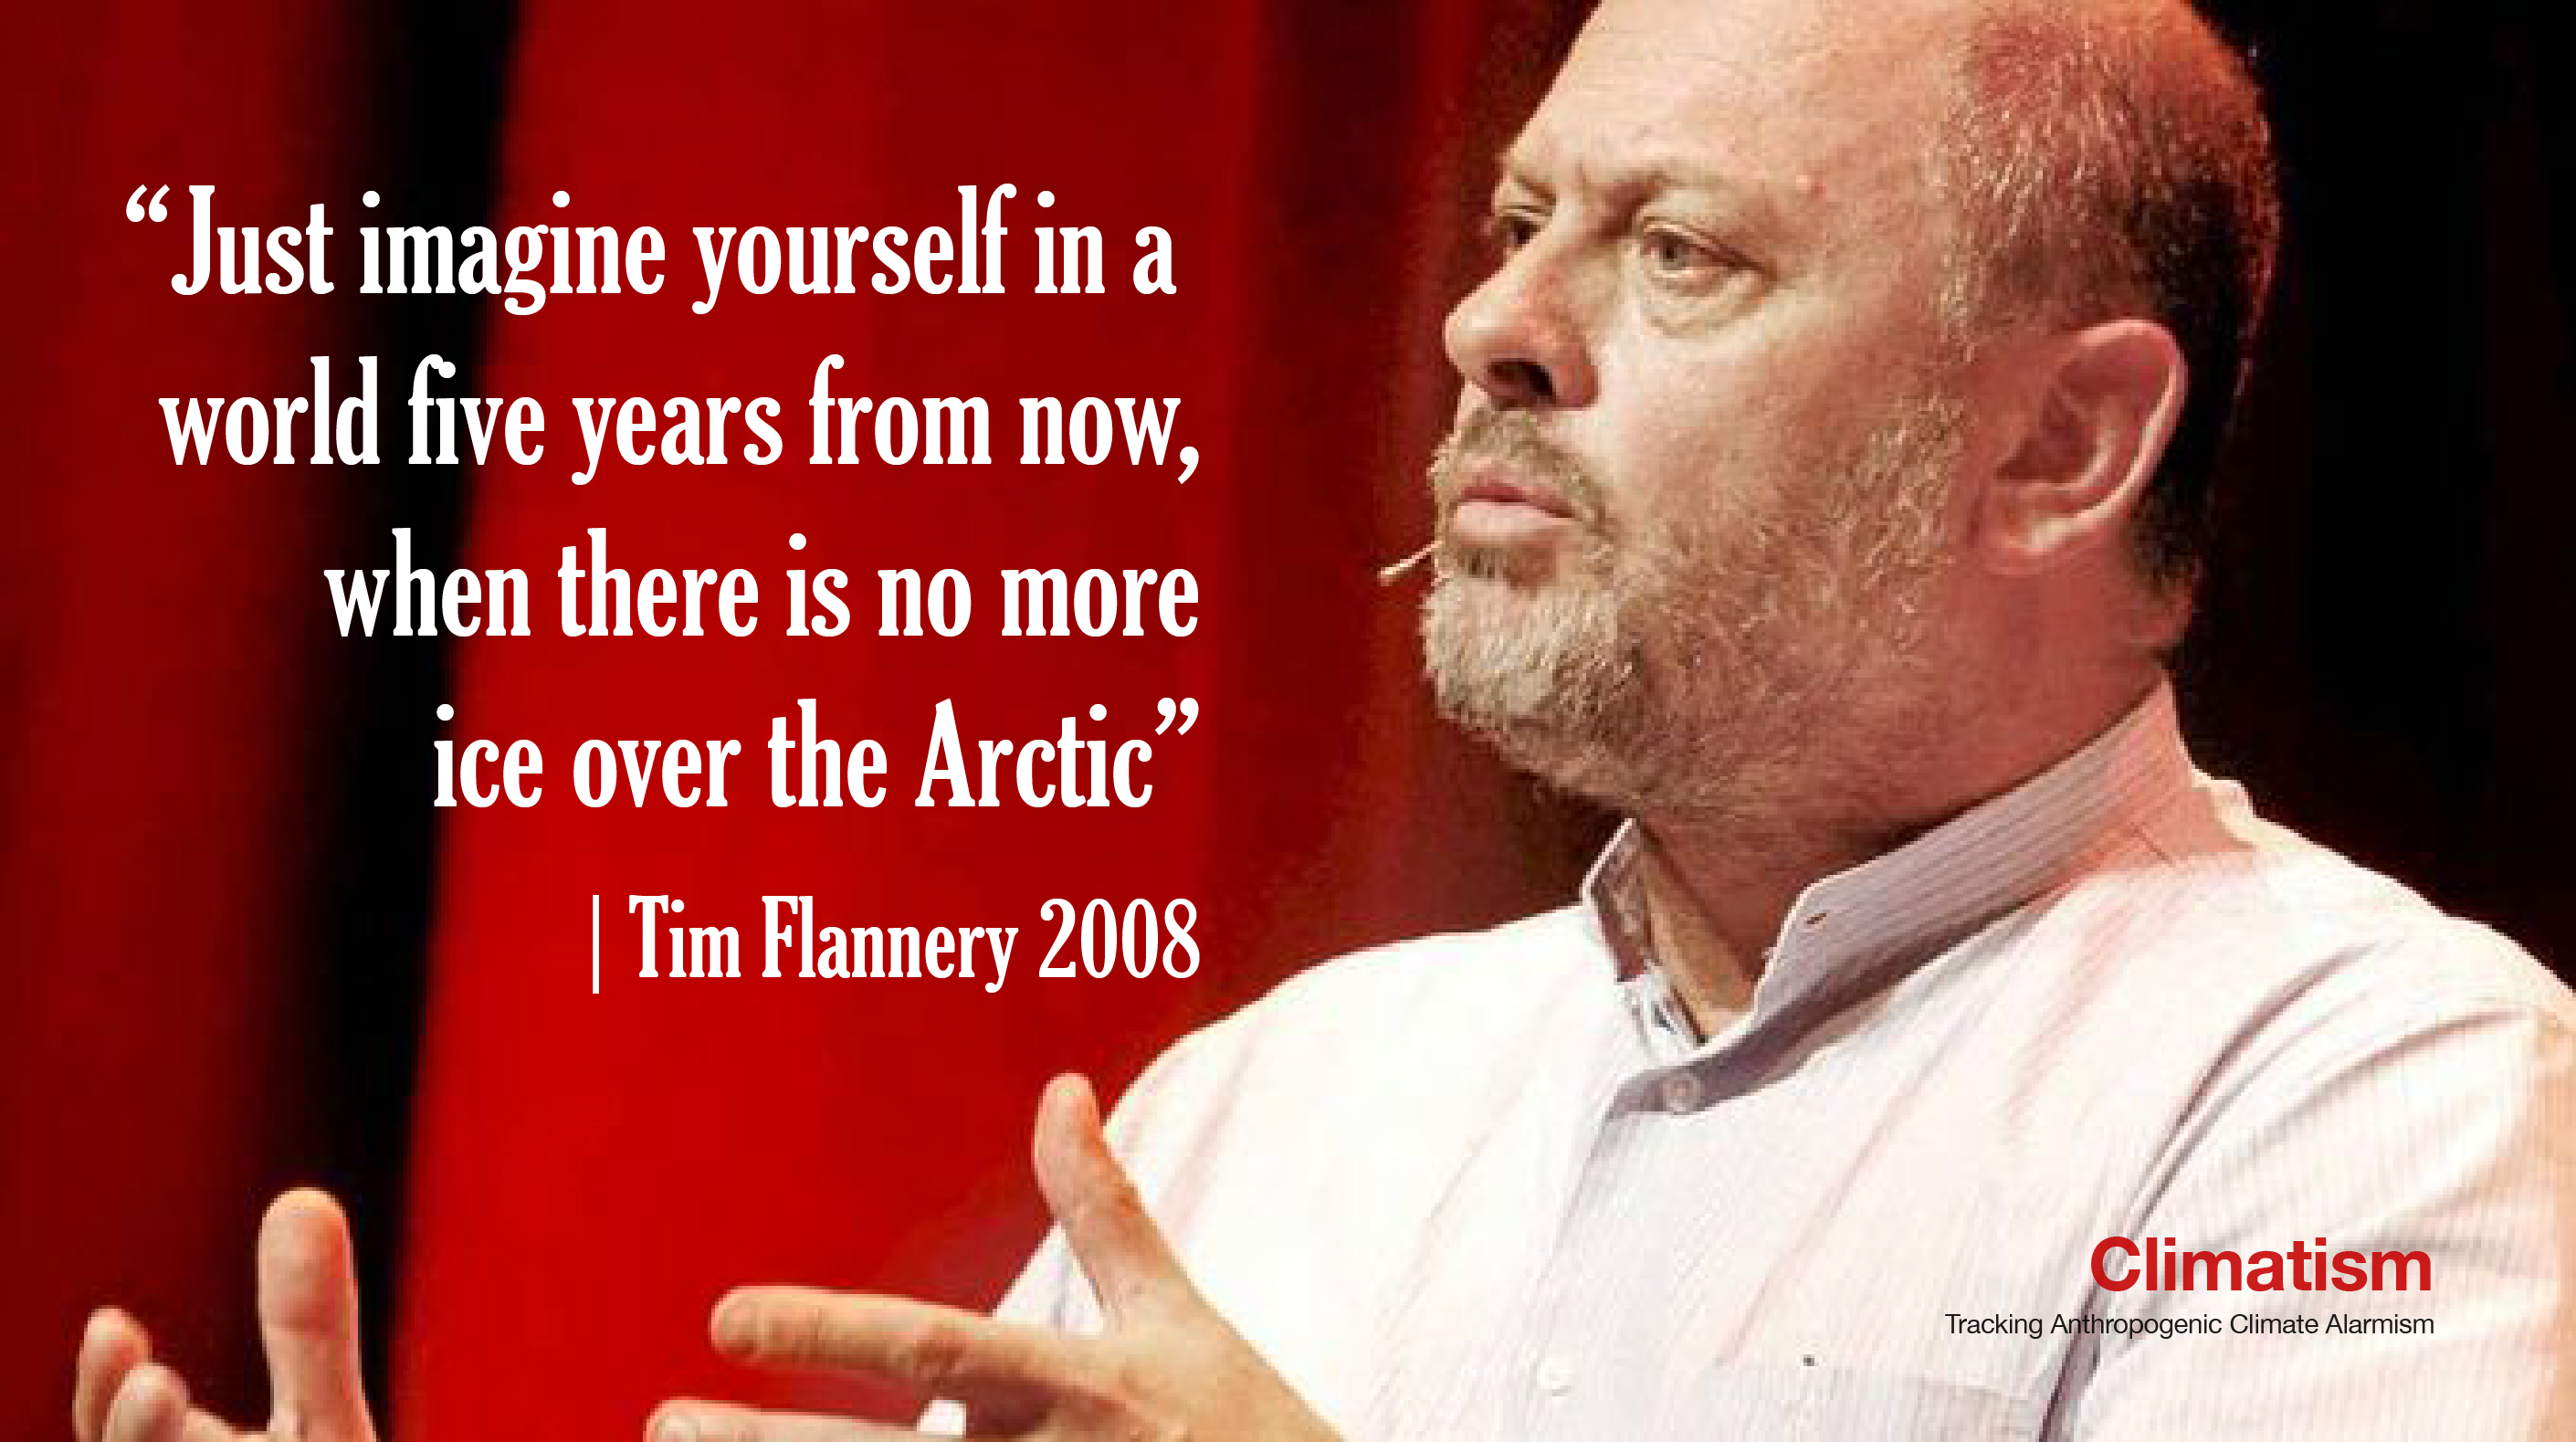 tim flannery - ice-free arctic - climatism